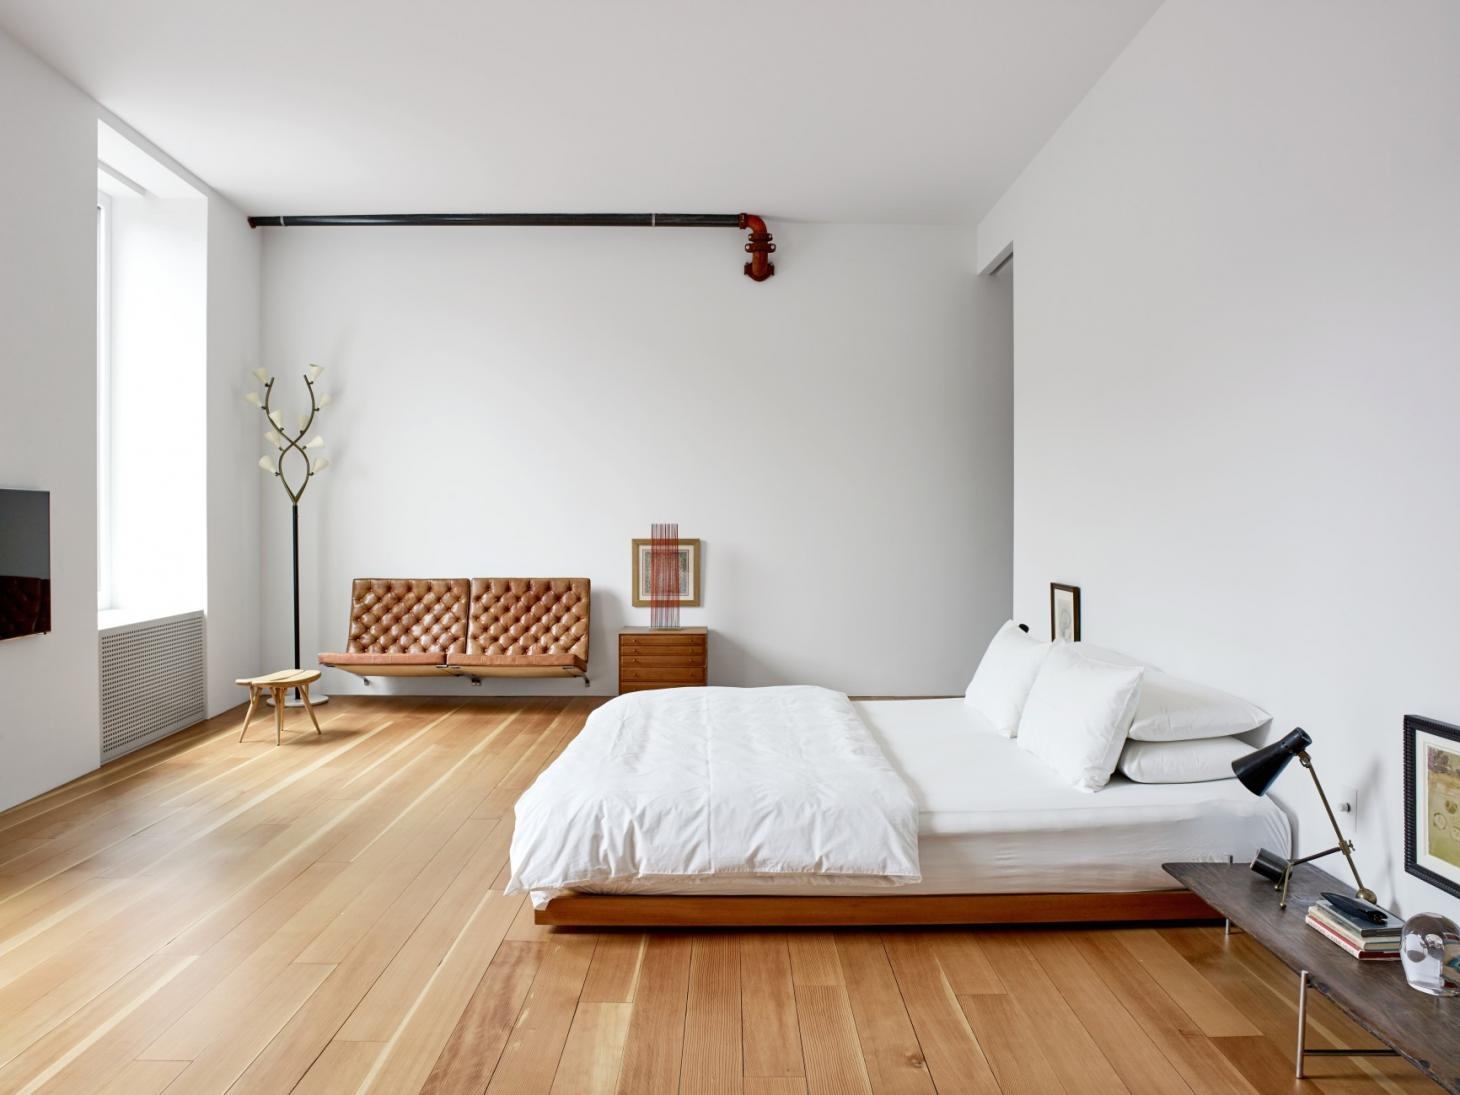 Michael Maharam bedroom in his New York Apartment, minimally decorated with a platform bed with white bedlinen